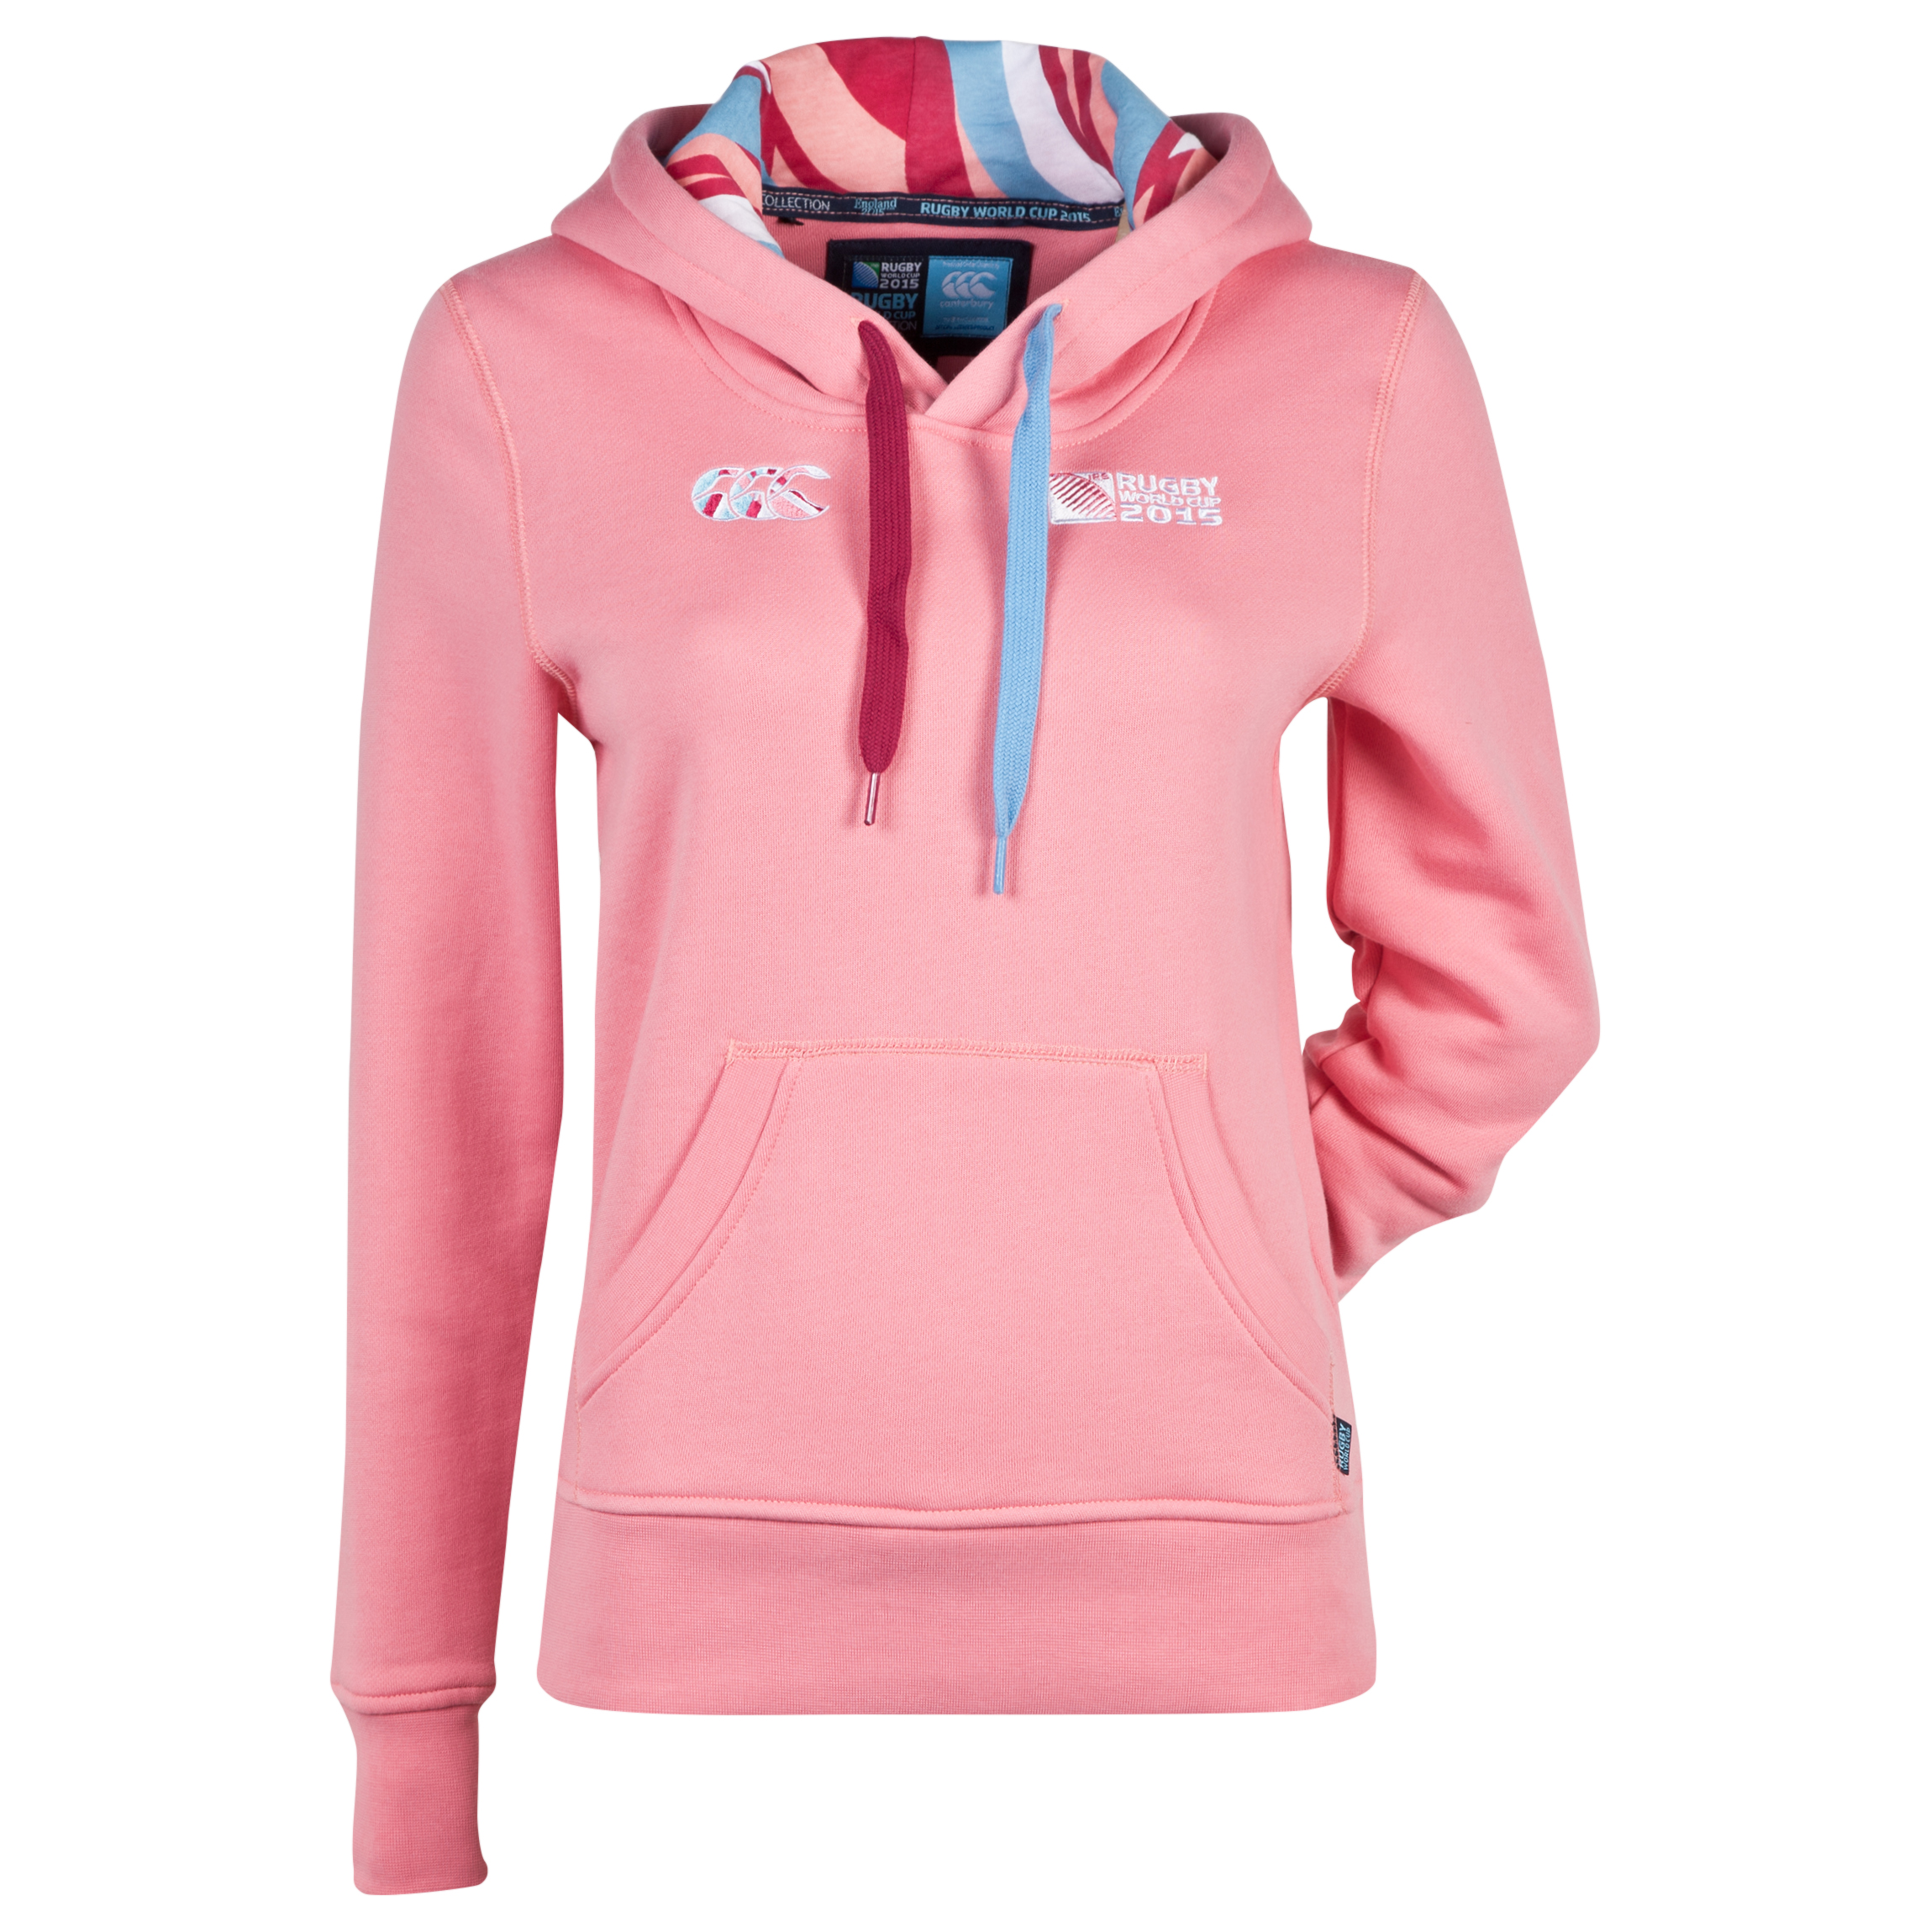 Canterbury Rugby World Cup Endurance Pullover Hoody - Womens Pink